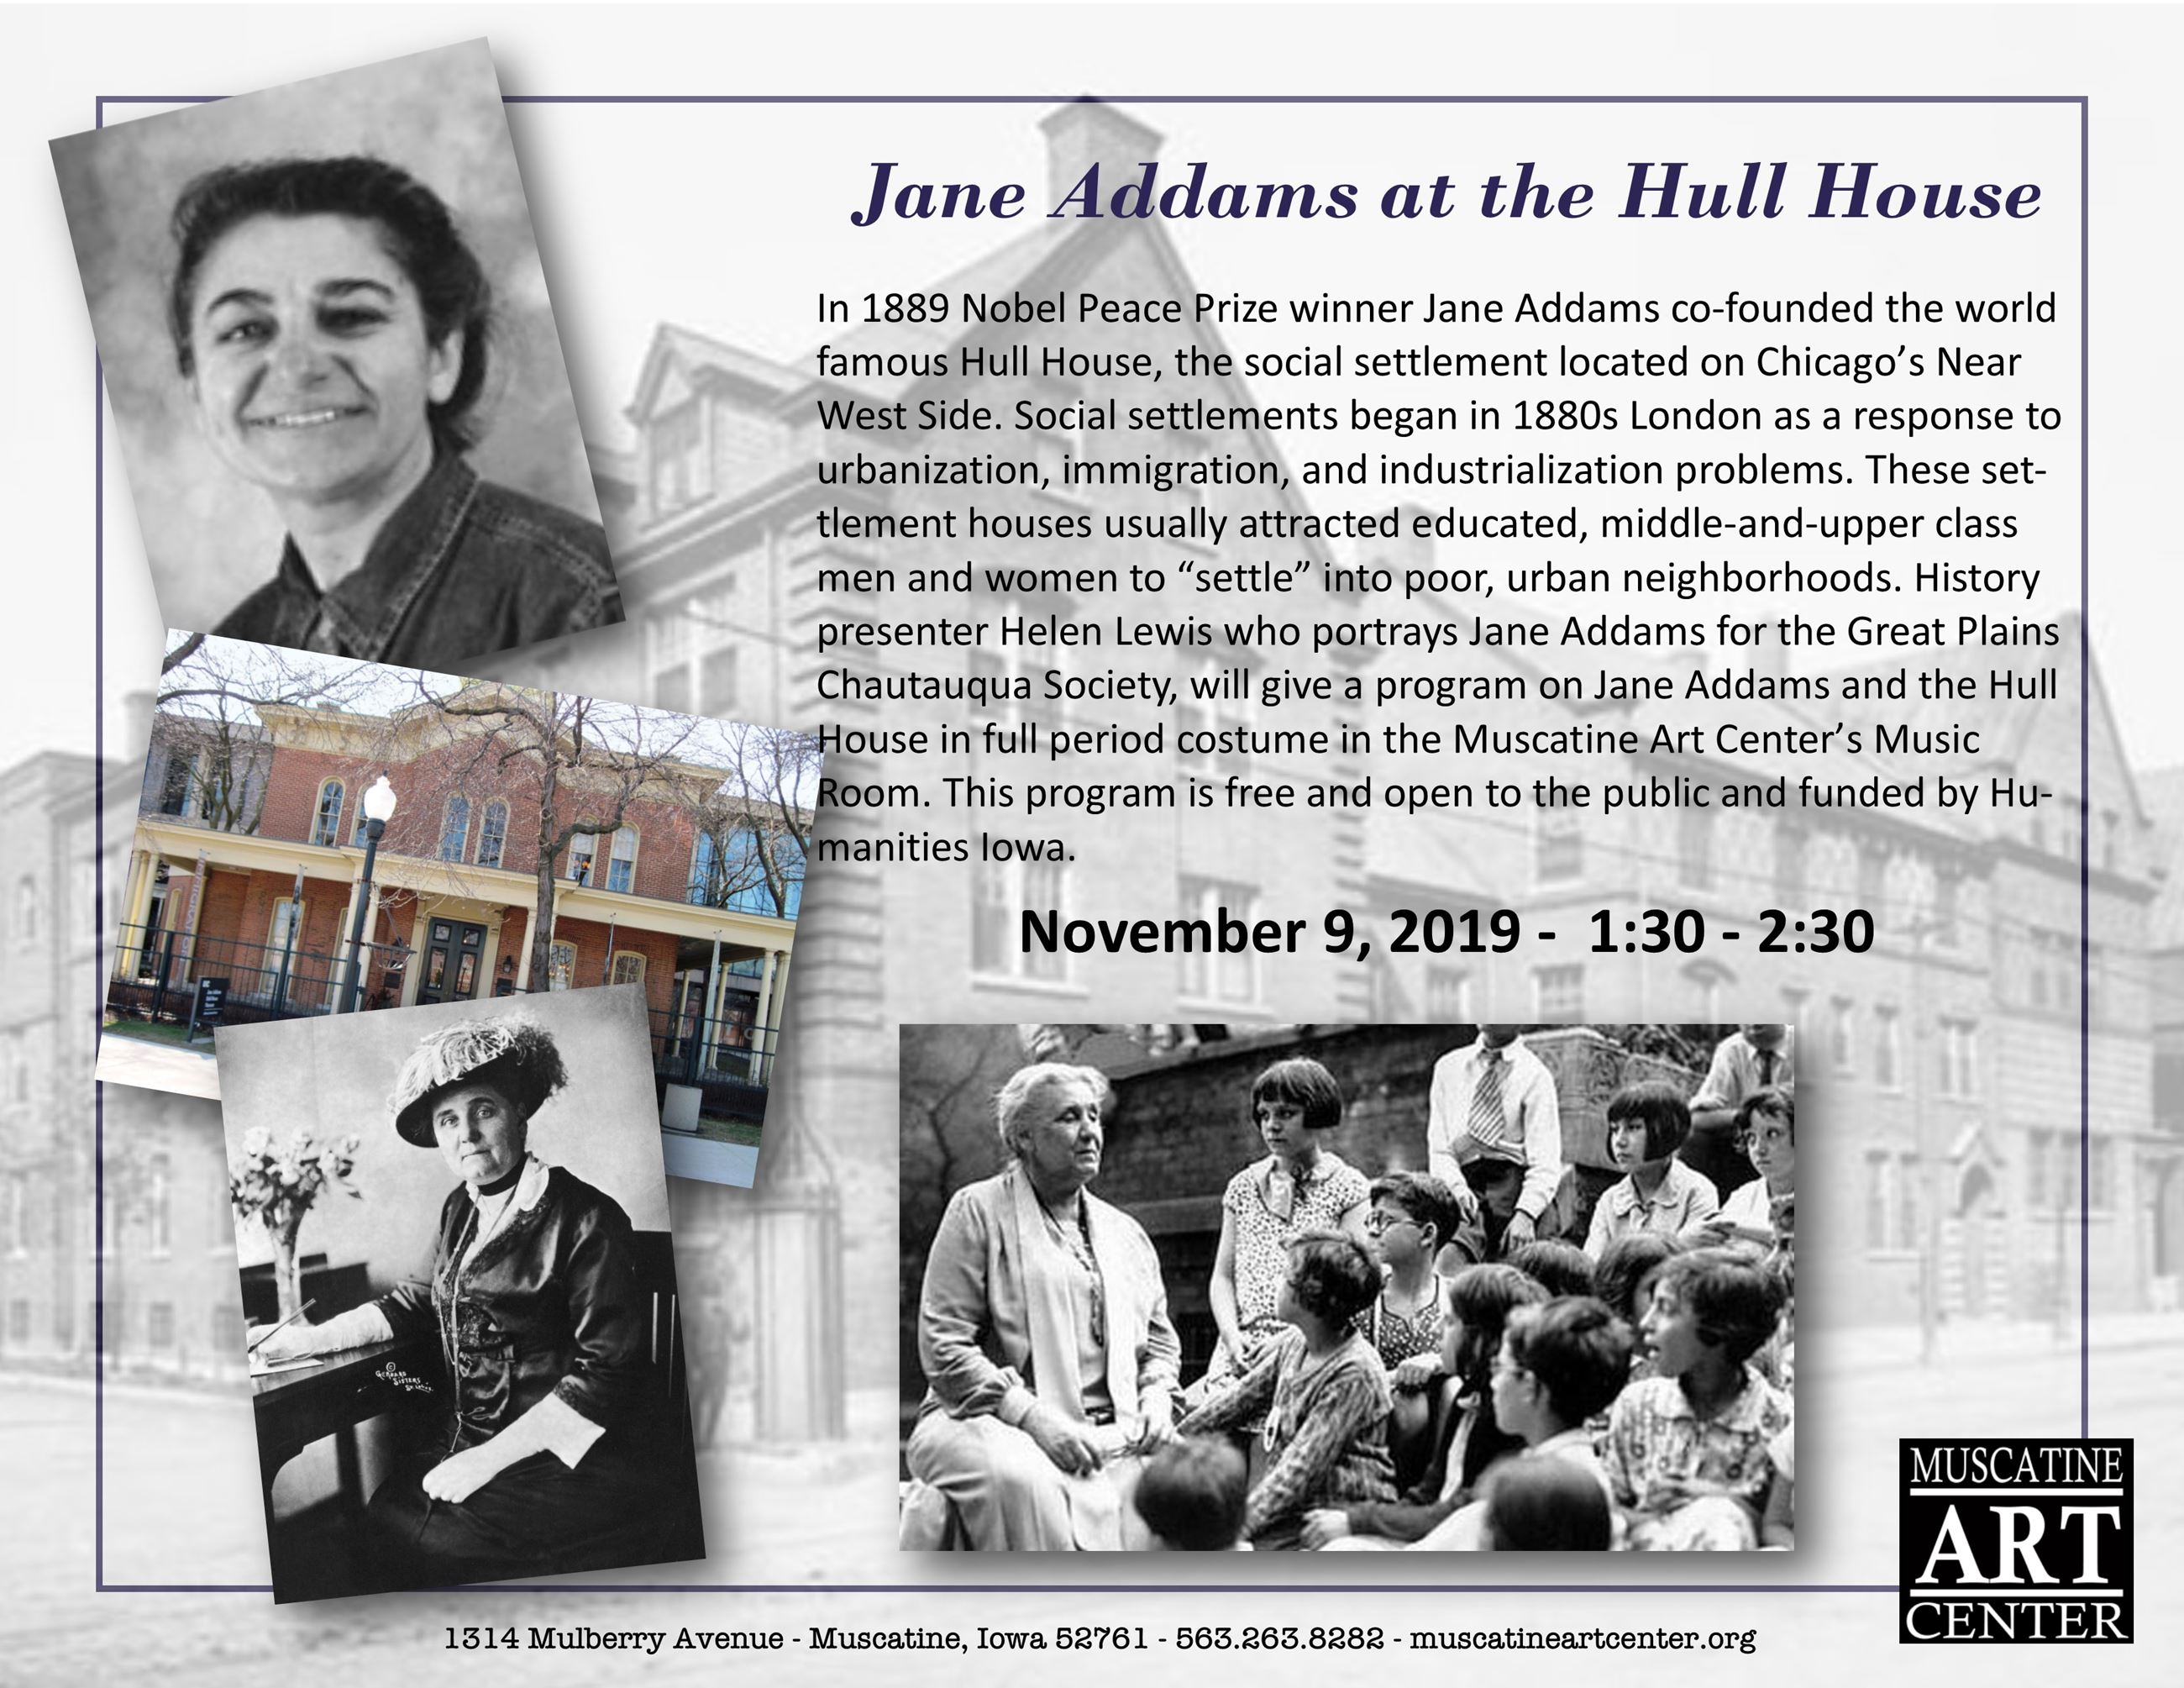 Jane Addams at the Hull House